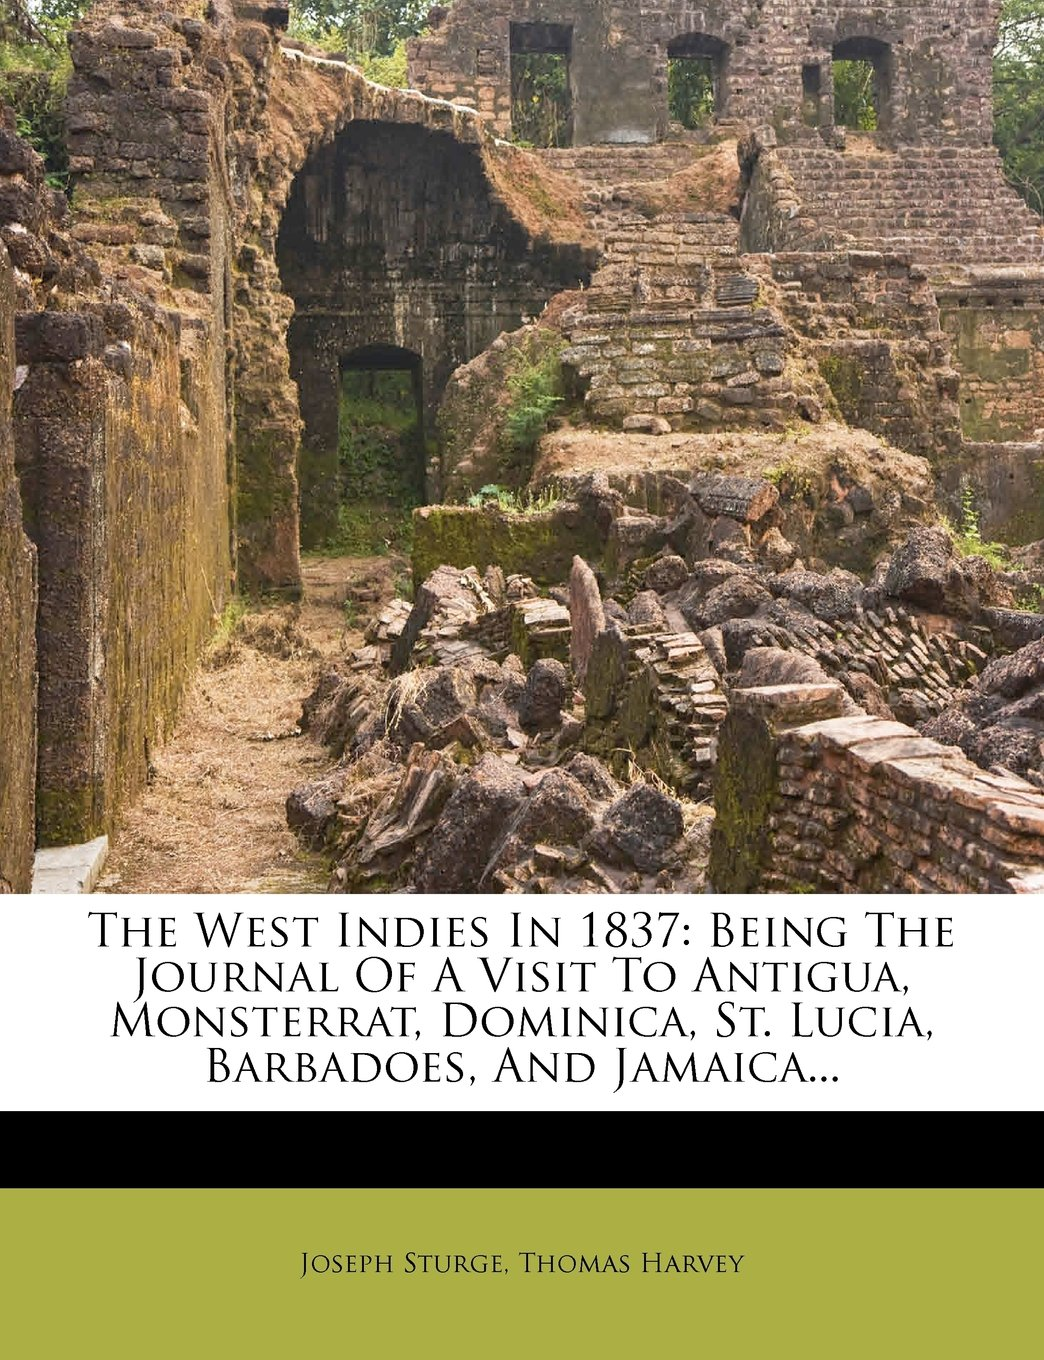 The West Indies In 1837: Being The Journal Of A Visit To Antigua, Monsterrat, Dominica, St. Lucia, Barbadoes, And Jamaica...